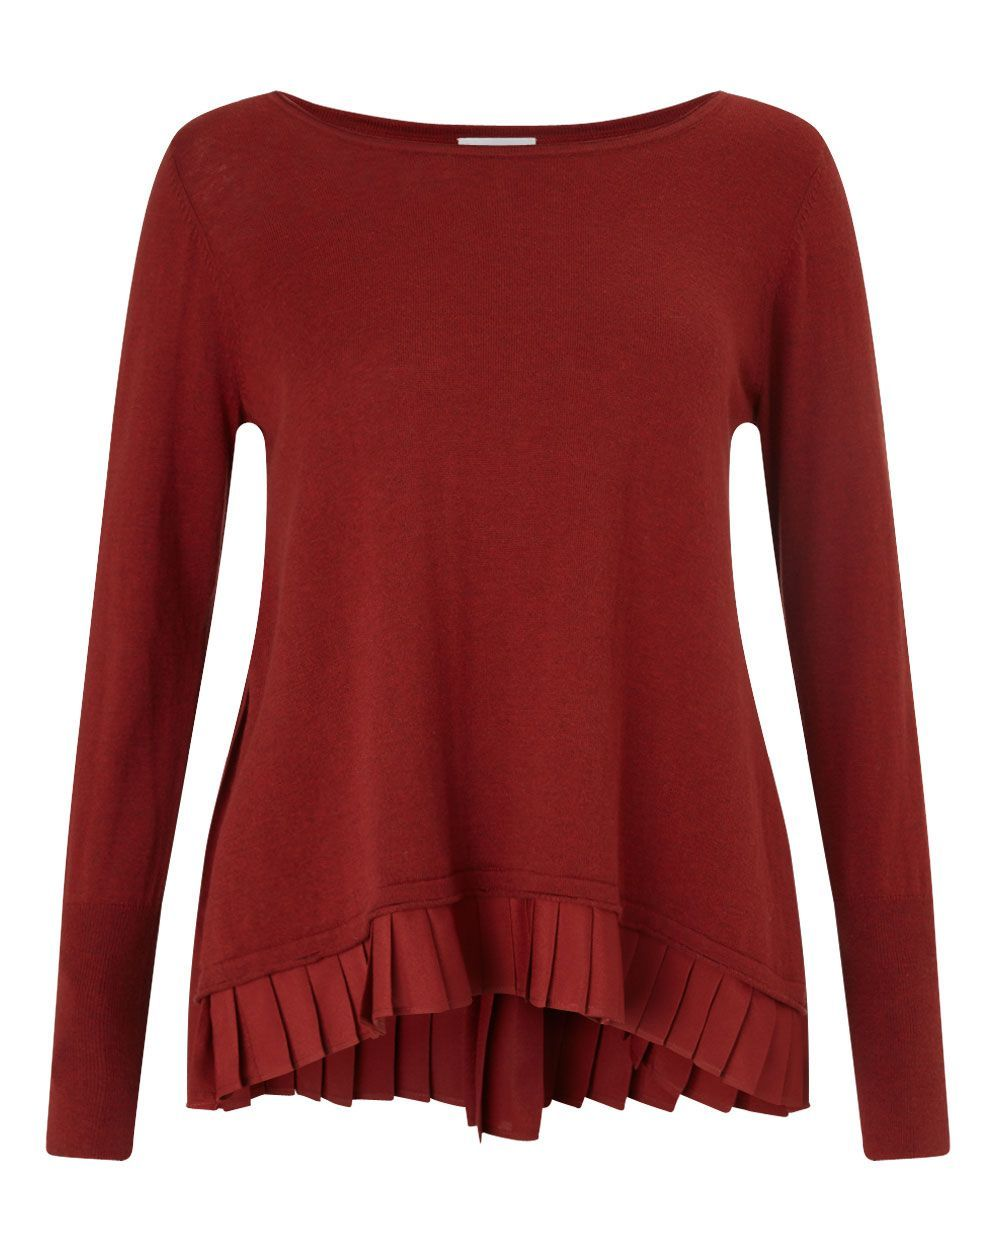 Pleat Back Jumper, Red - neckline: slash/boat neckline; pattern: plain; style: standard; predominant colour: burgundy; occasions: casual, creative work; length: standard; fit: loose; fibres: cashmere - 100%; sleeve length: long sleeve; sleeve style: standard; texture group: knits/crochet; pattern type: knitted - fine stitch; season: a/w 2015; wardrobe: highlight